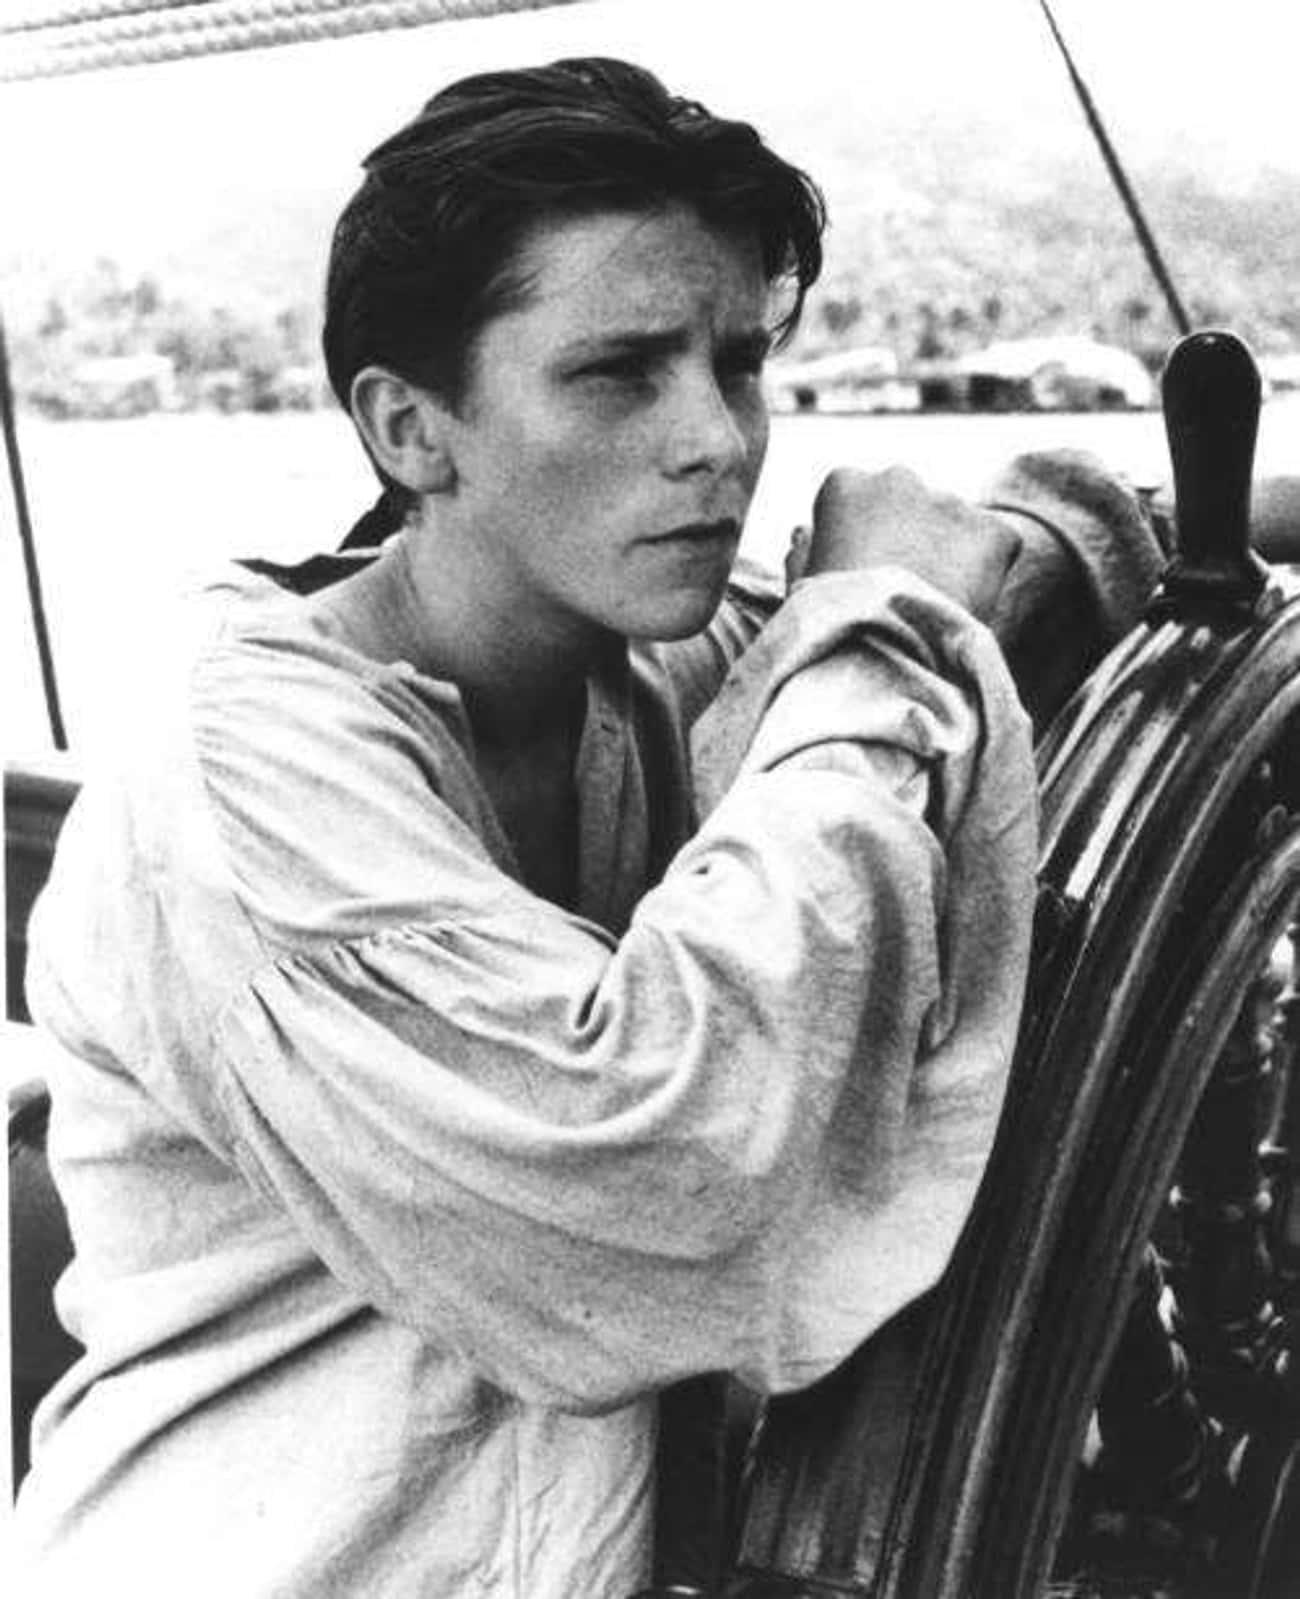 Young Christian Bale in White  is listed (or ranked) 3 on the list 20 Pictures of Young Christian Bale